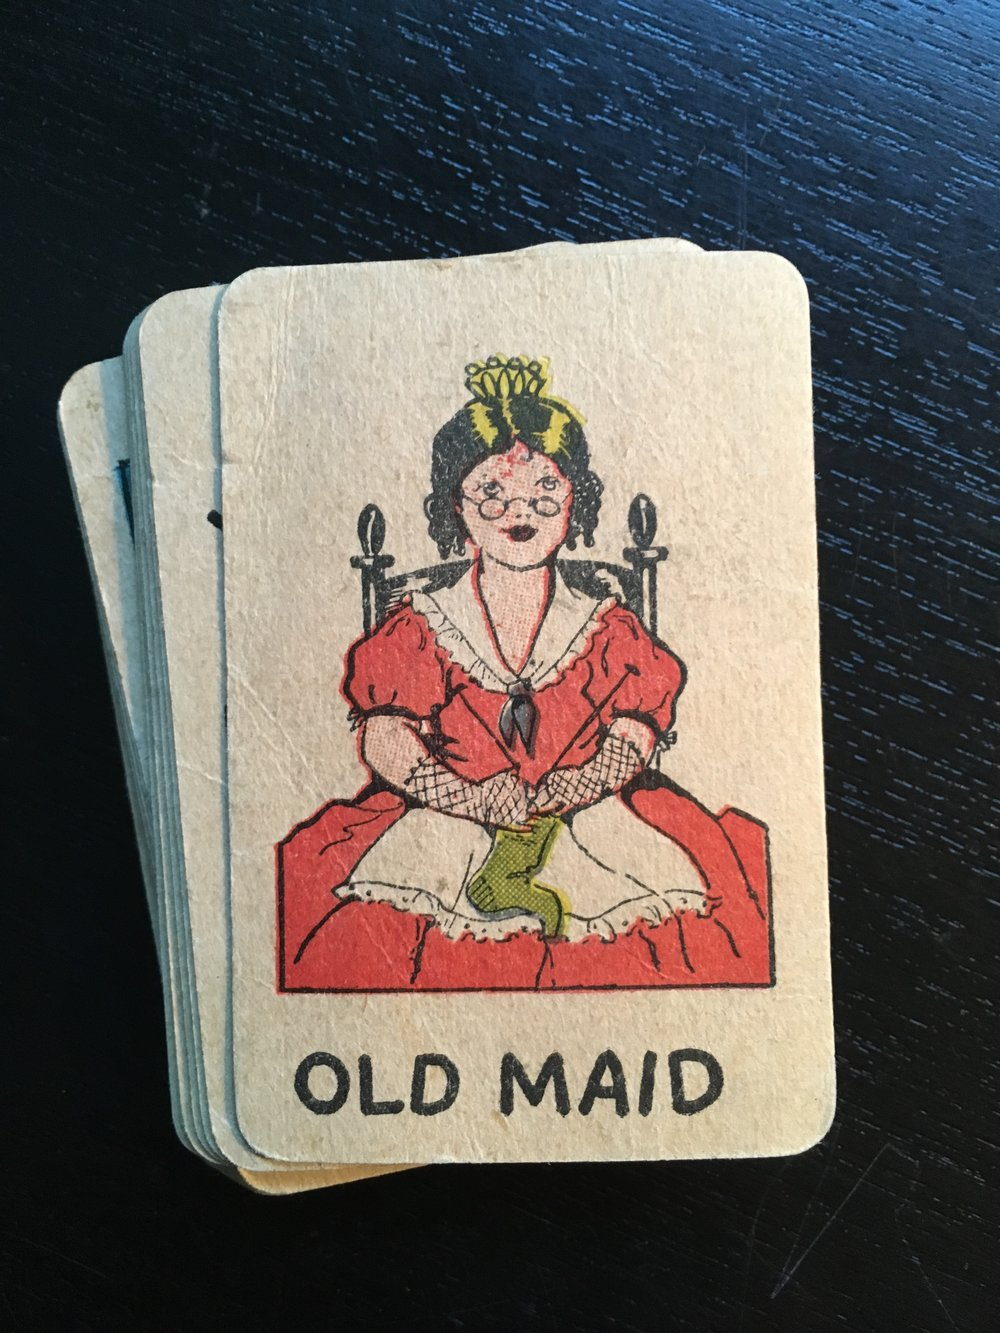 The Old Maid card.